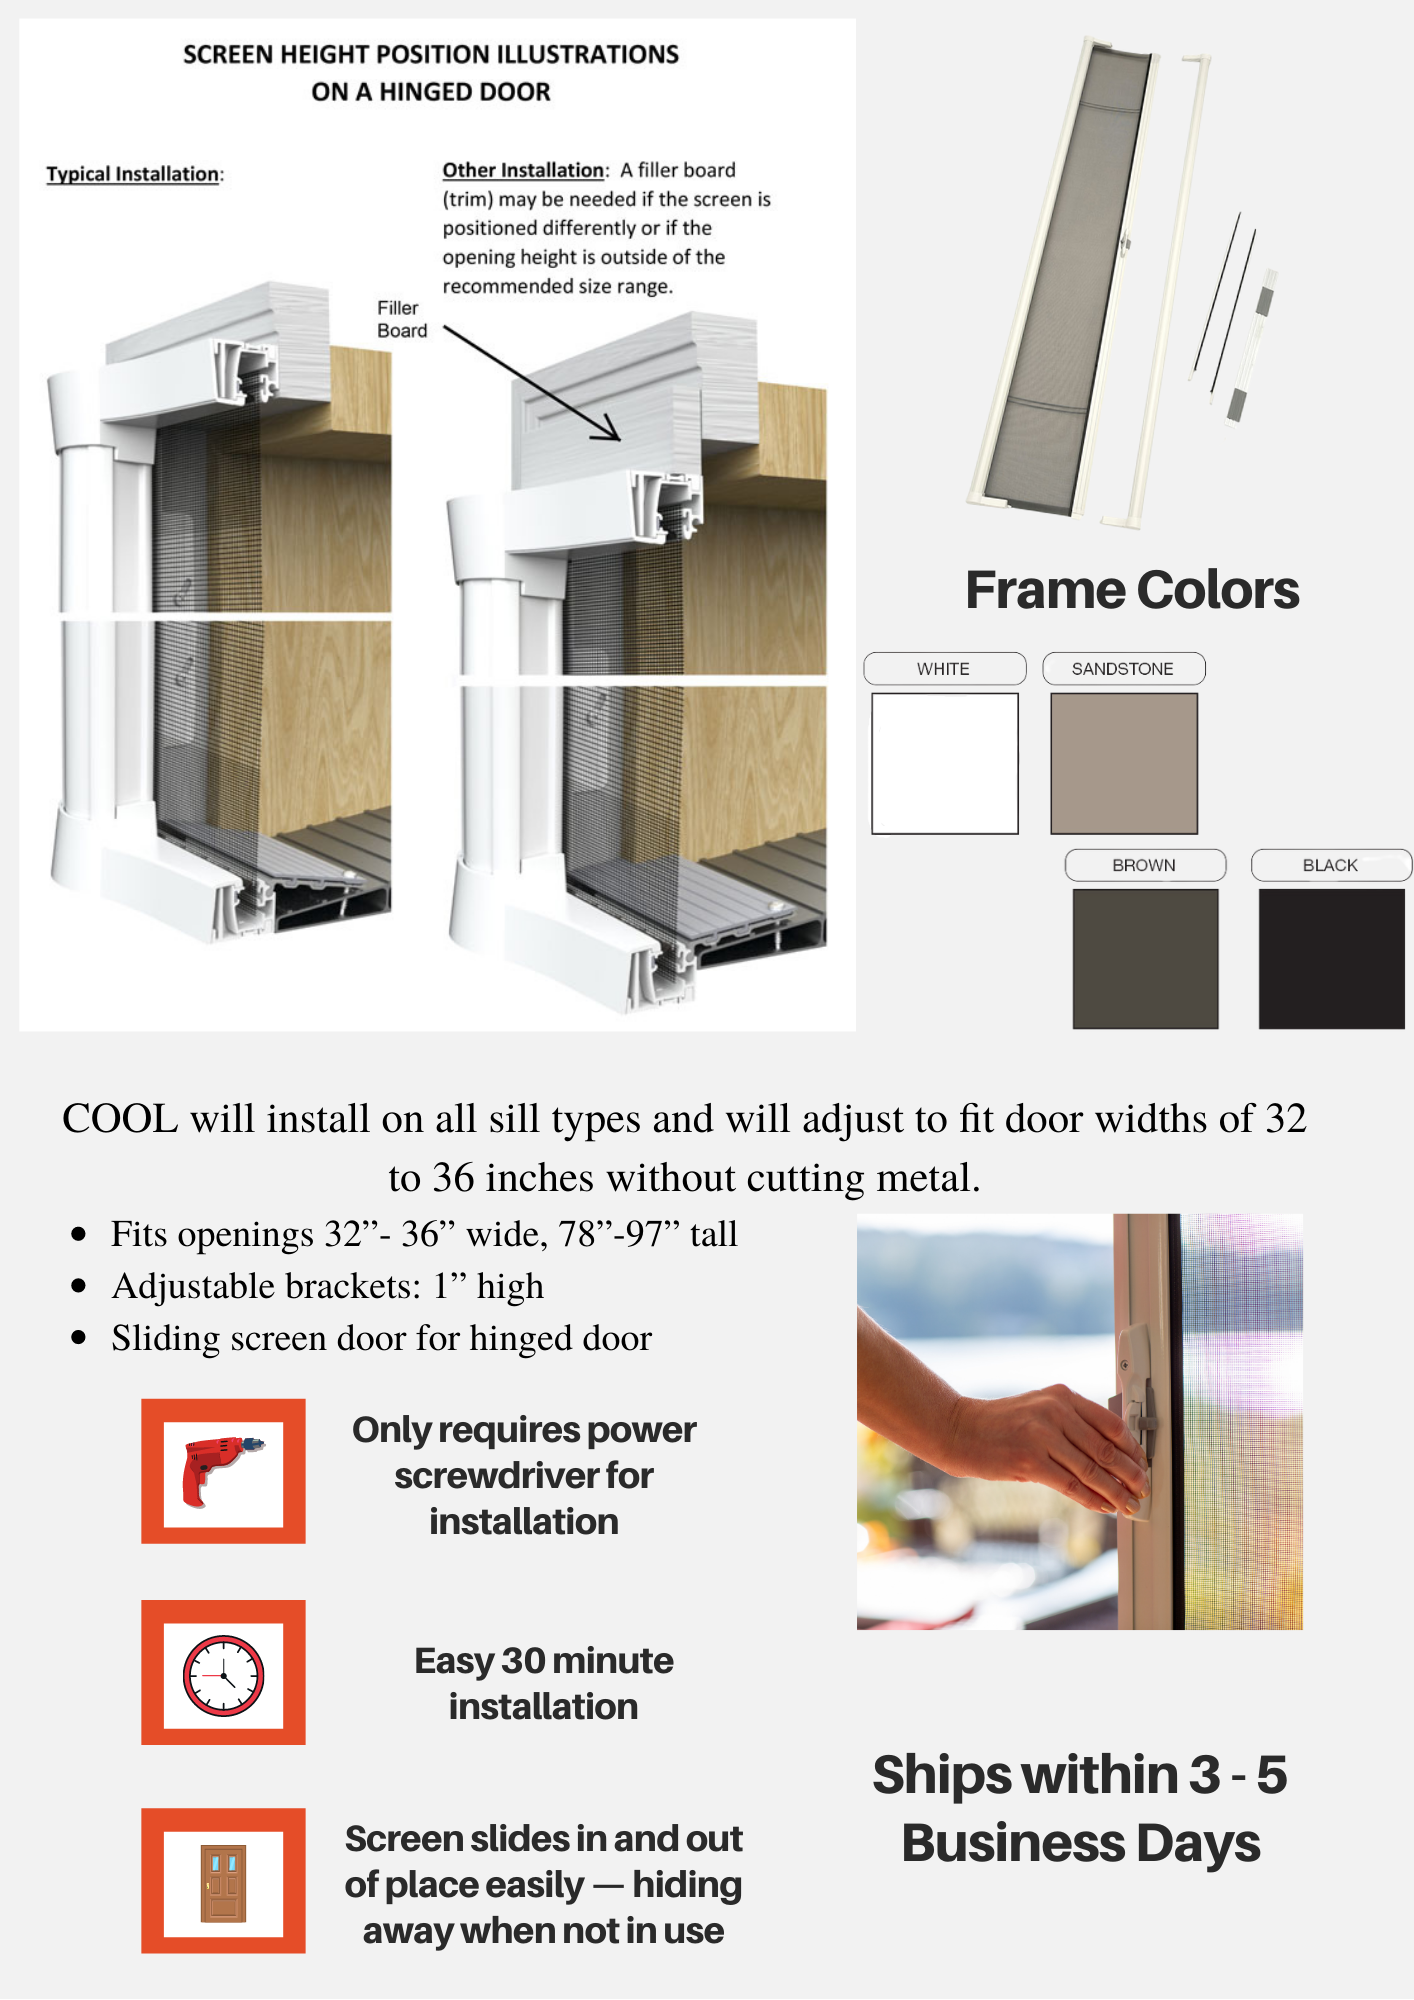 Cool will install on all sill types and will adjust to fit different door widths. Screen slides in and out of place easily- hiding away when not in use.